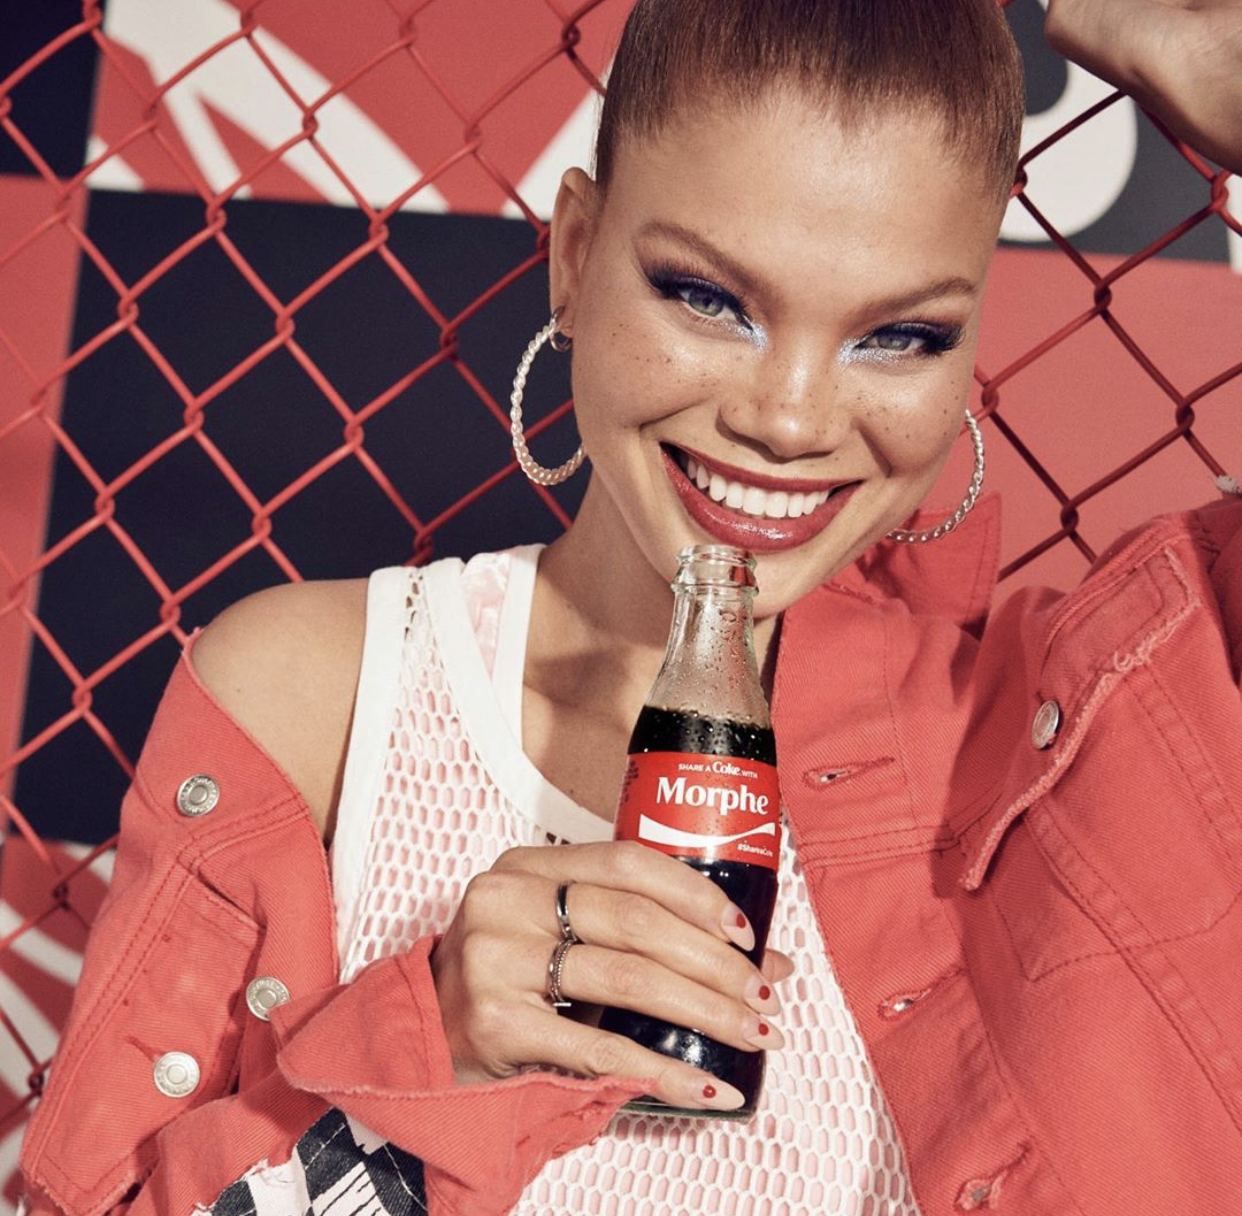 Morphe x Coca Cola Thirst For Life Collaboration 1